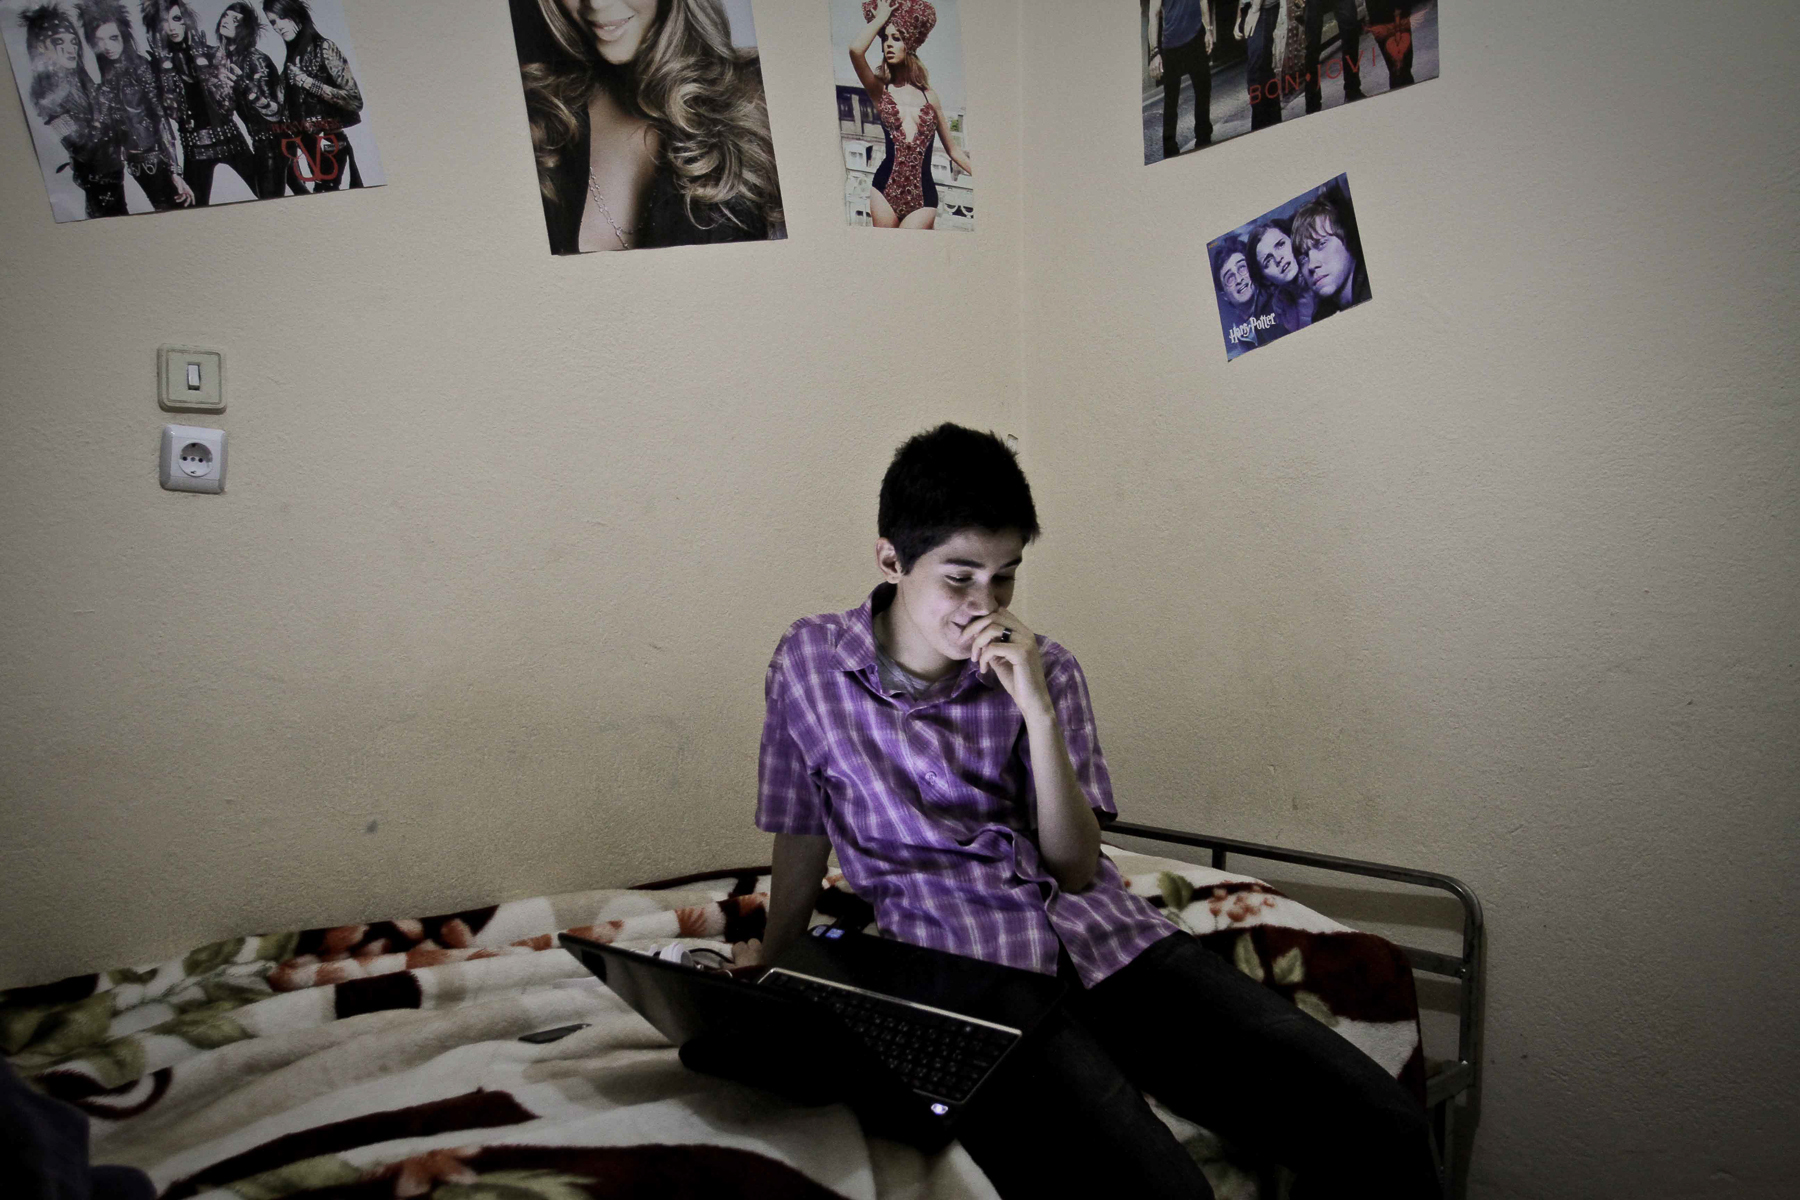 Image: Arkan, 20, chats with his girldfirend on Skype in central Turkey in 2012